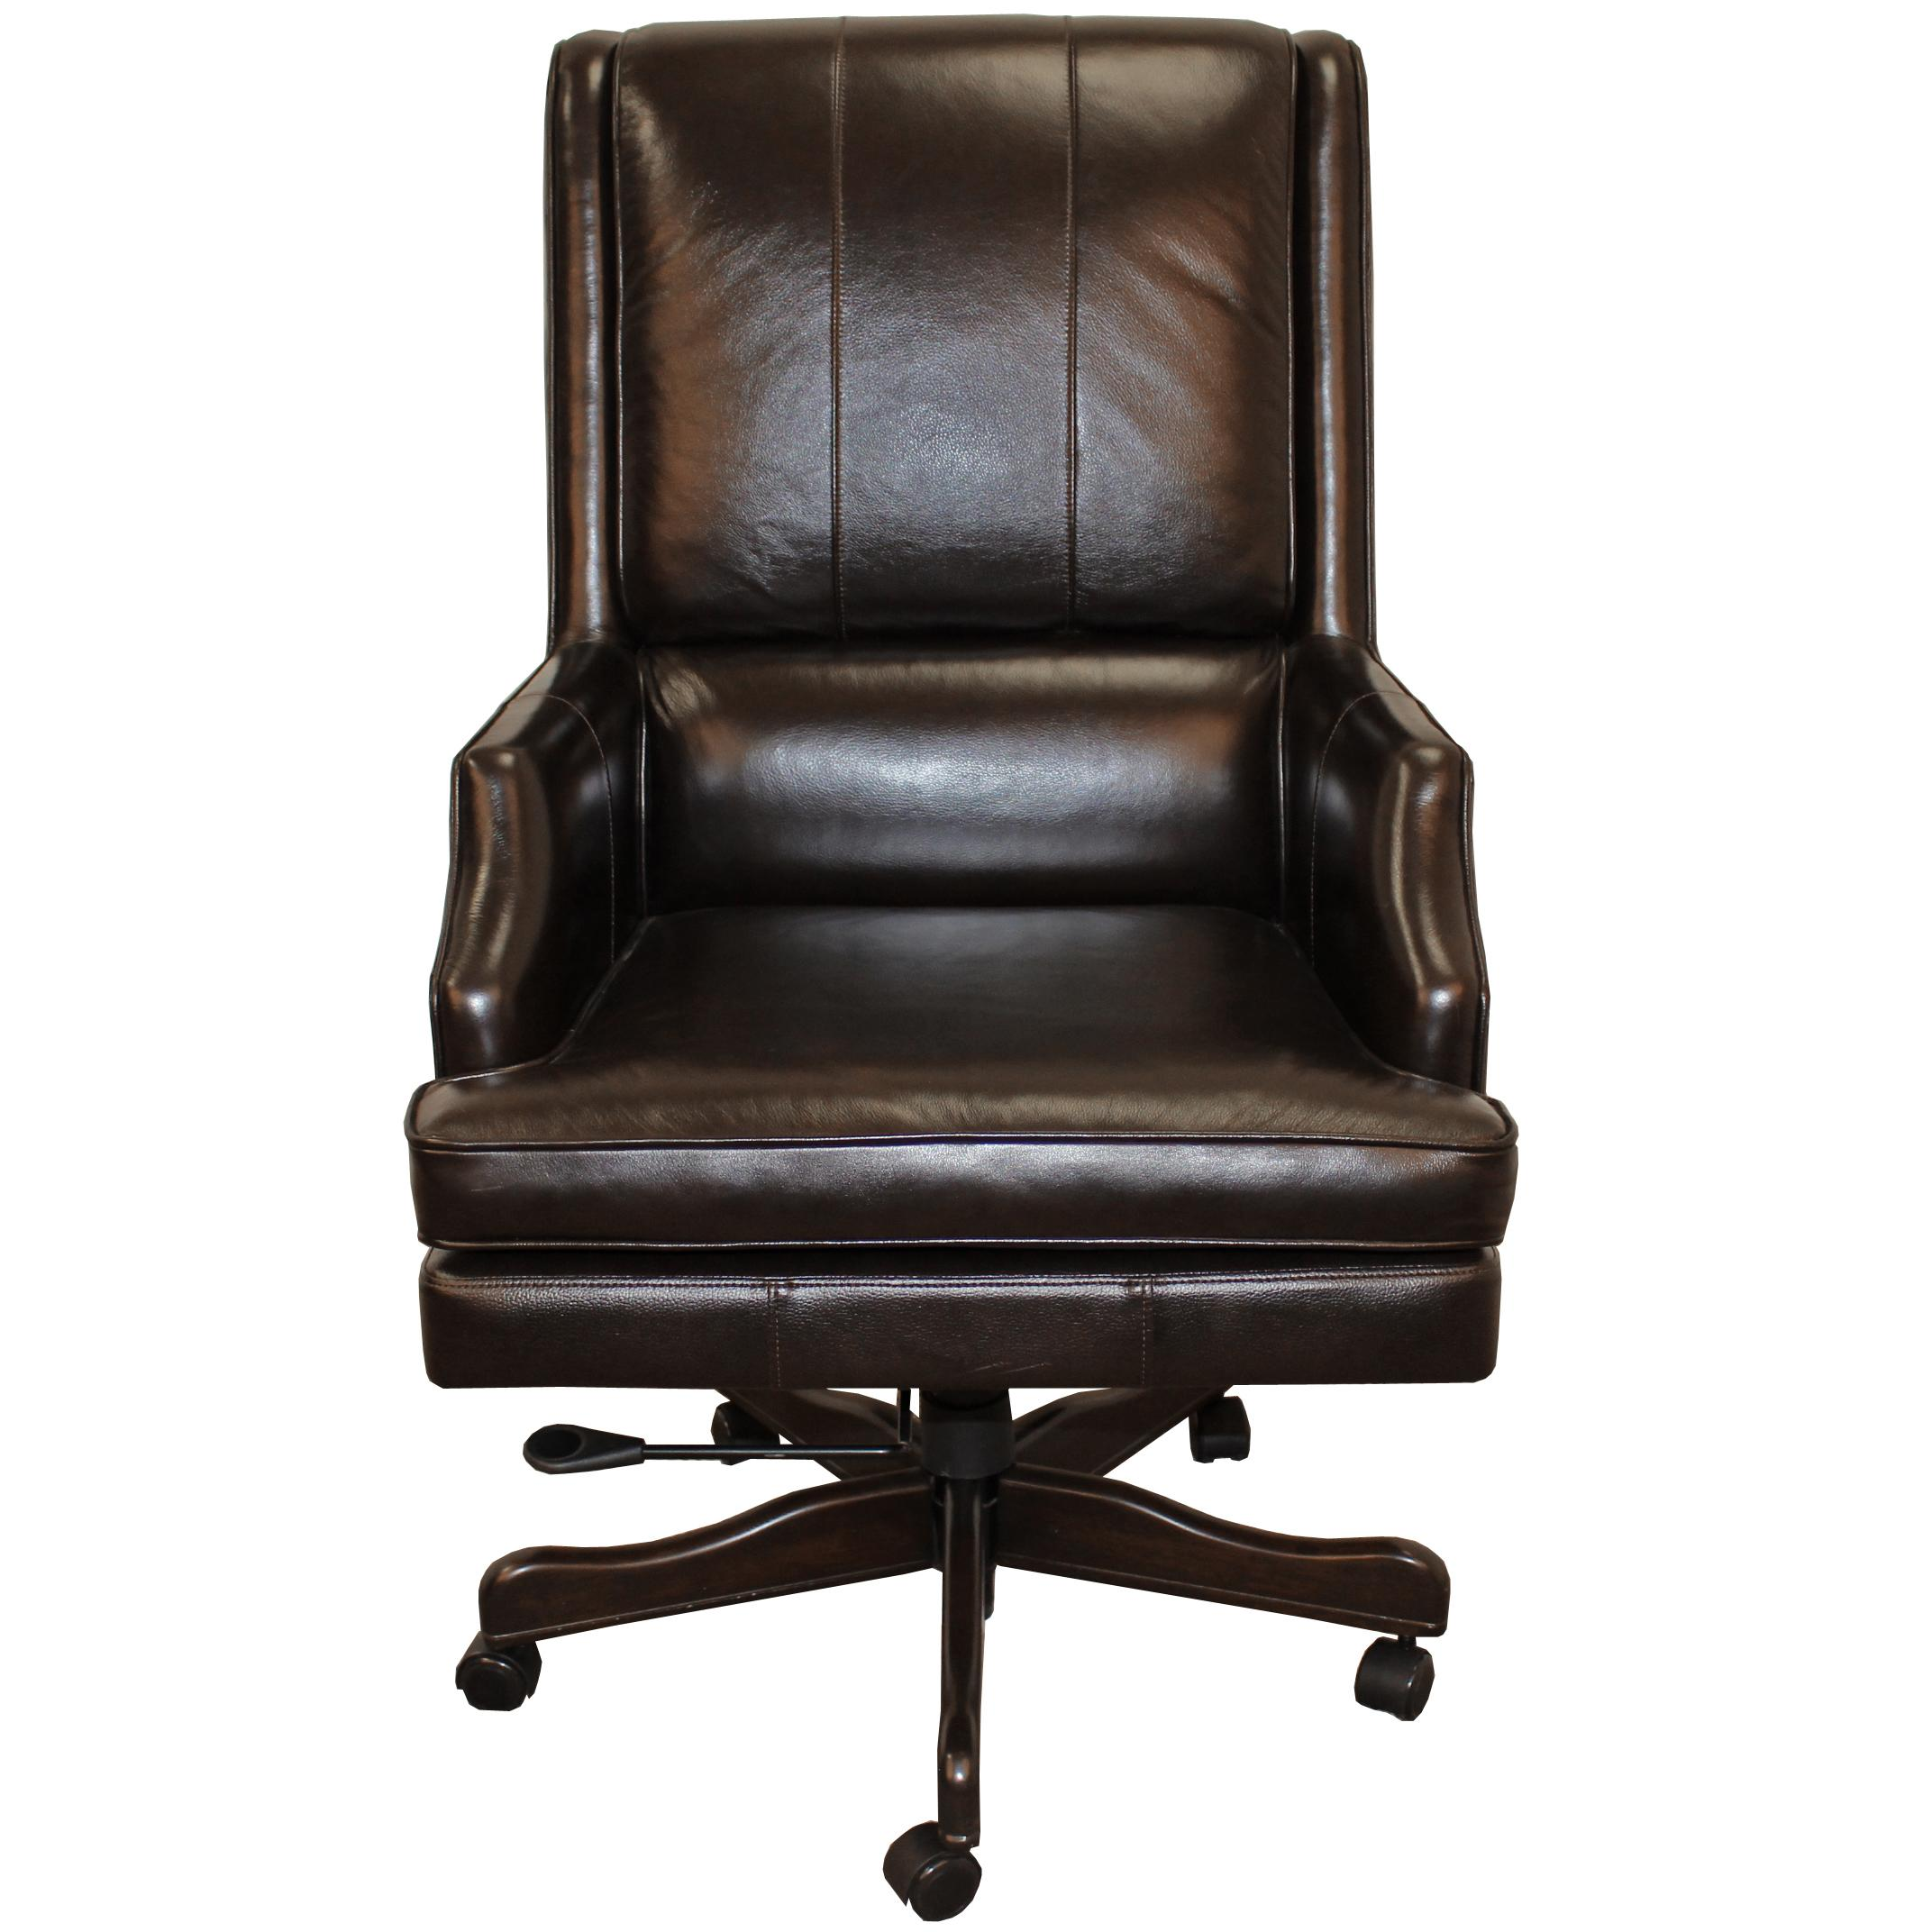 Parker Living Desk Chairs Executive Chair - Item Number: DC-107-SB